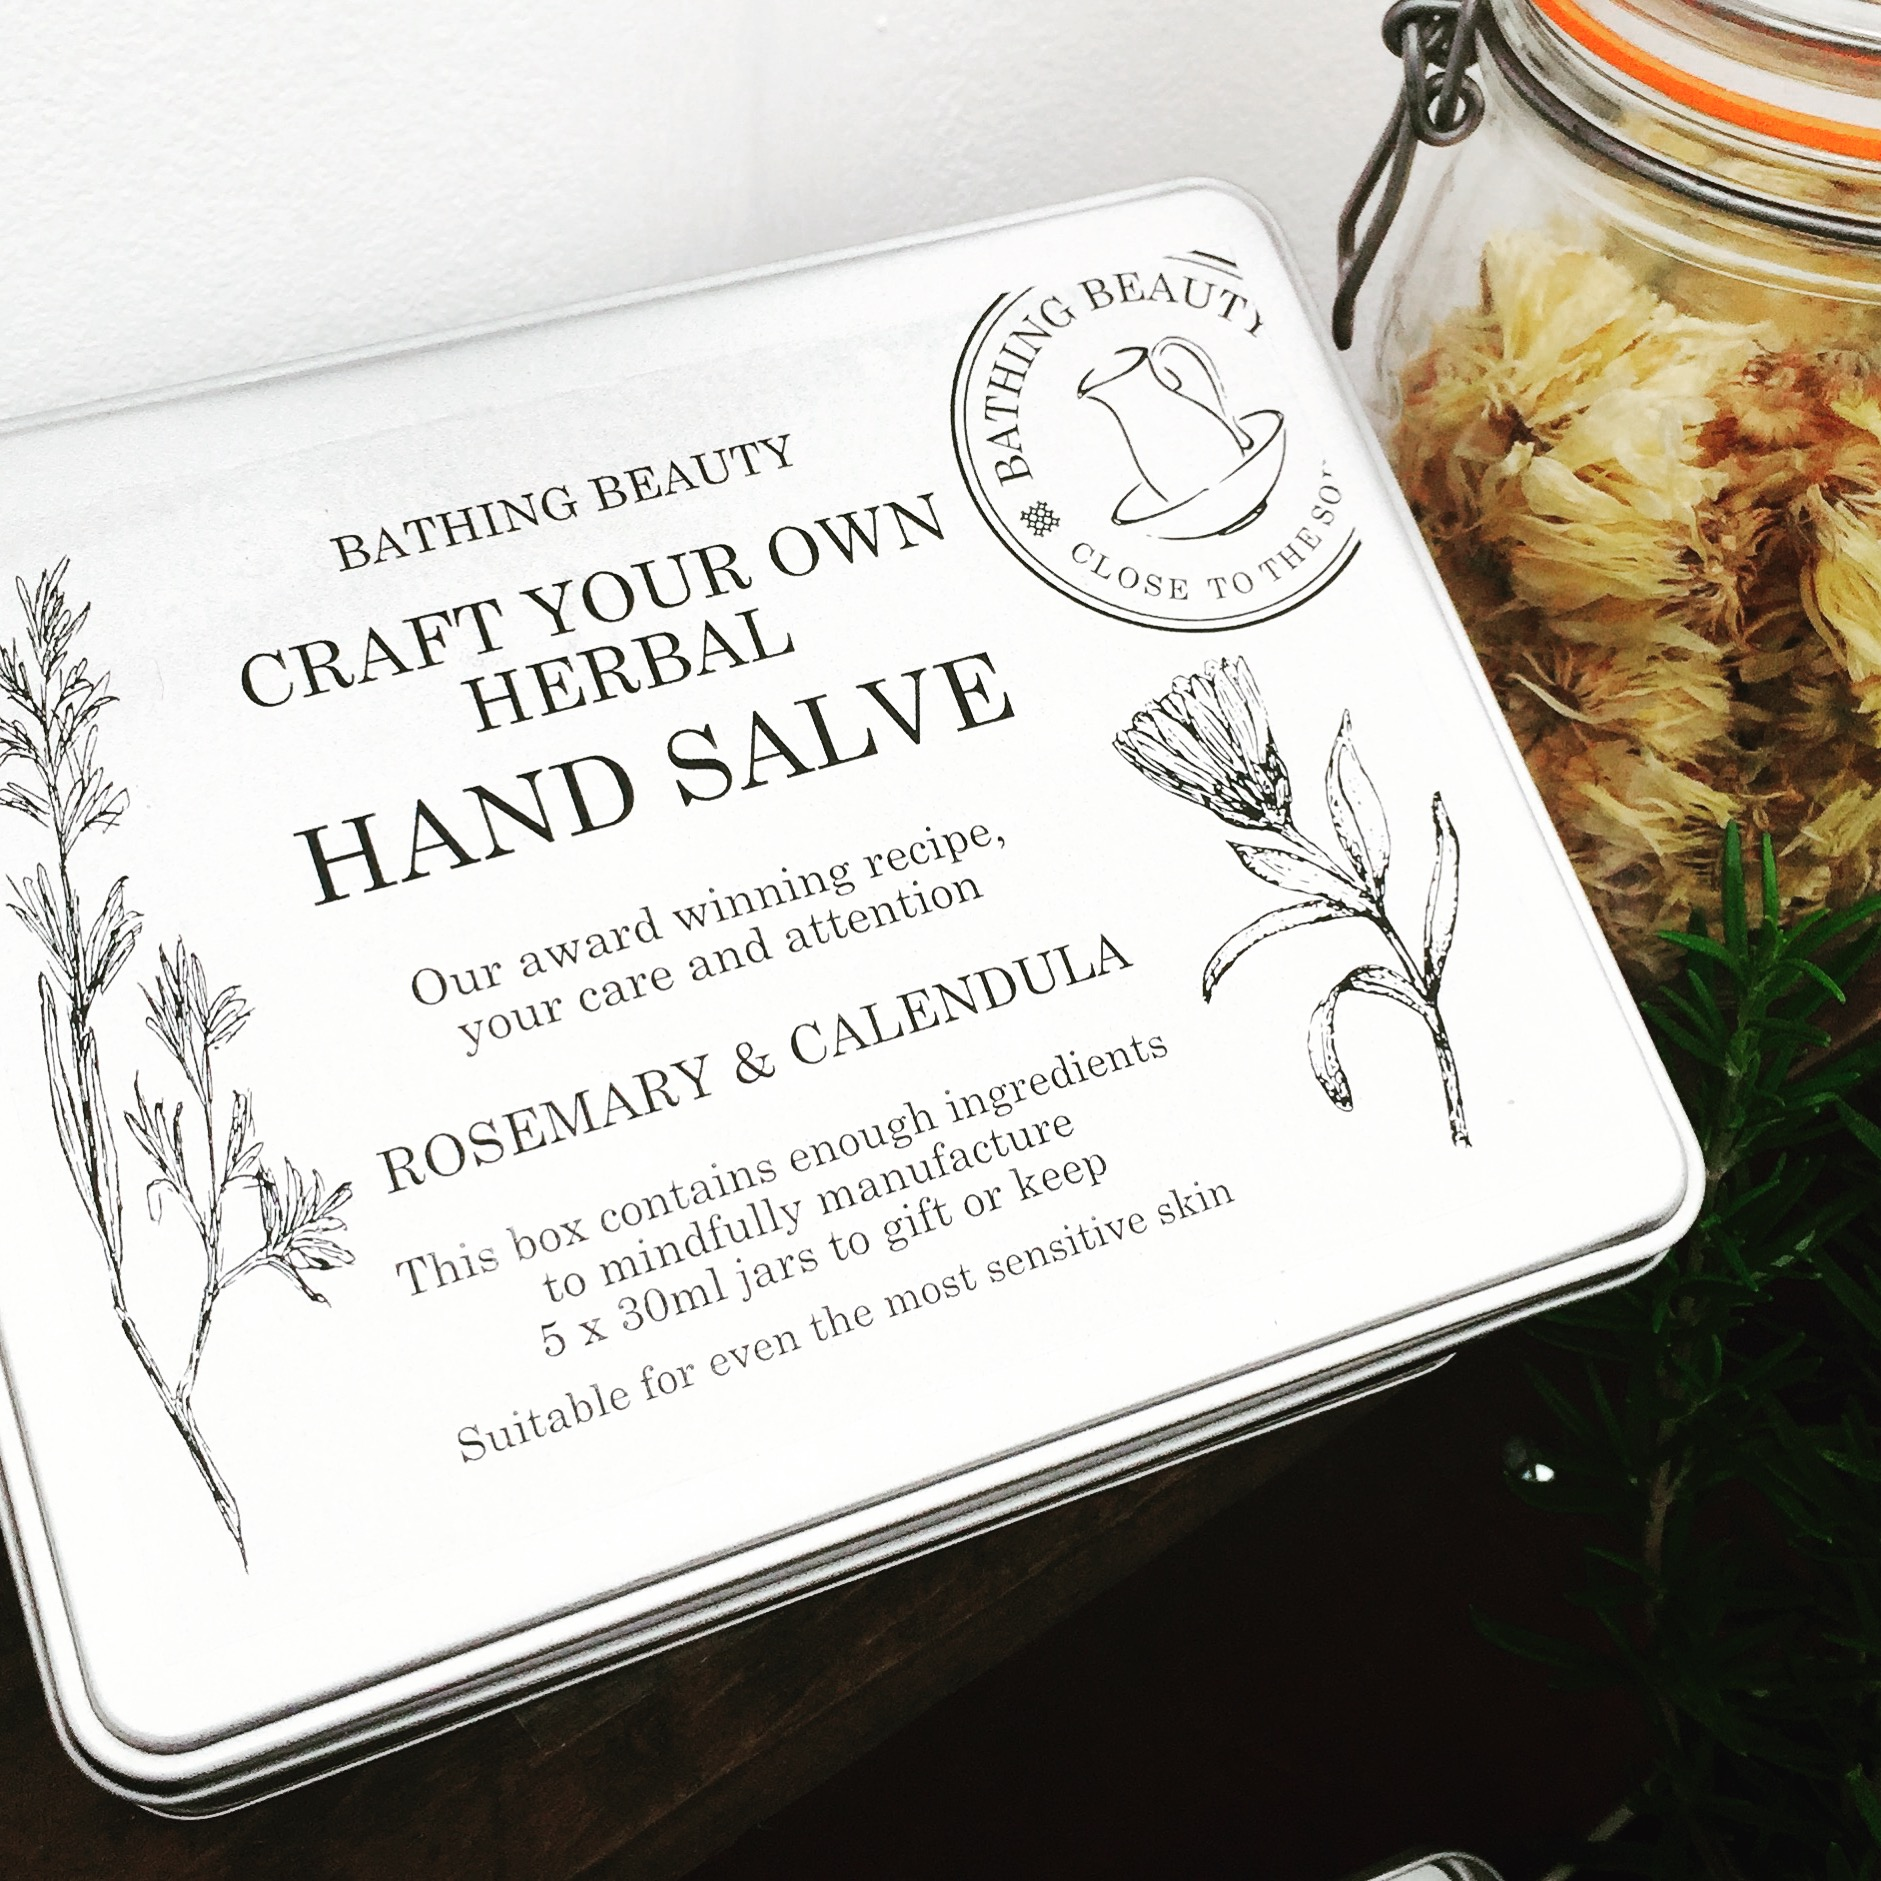 craft your own herbal handsalve gift tin